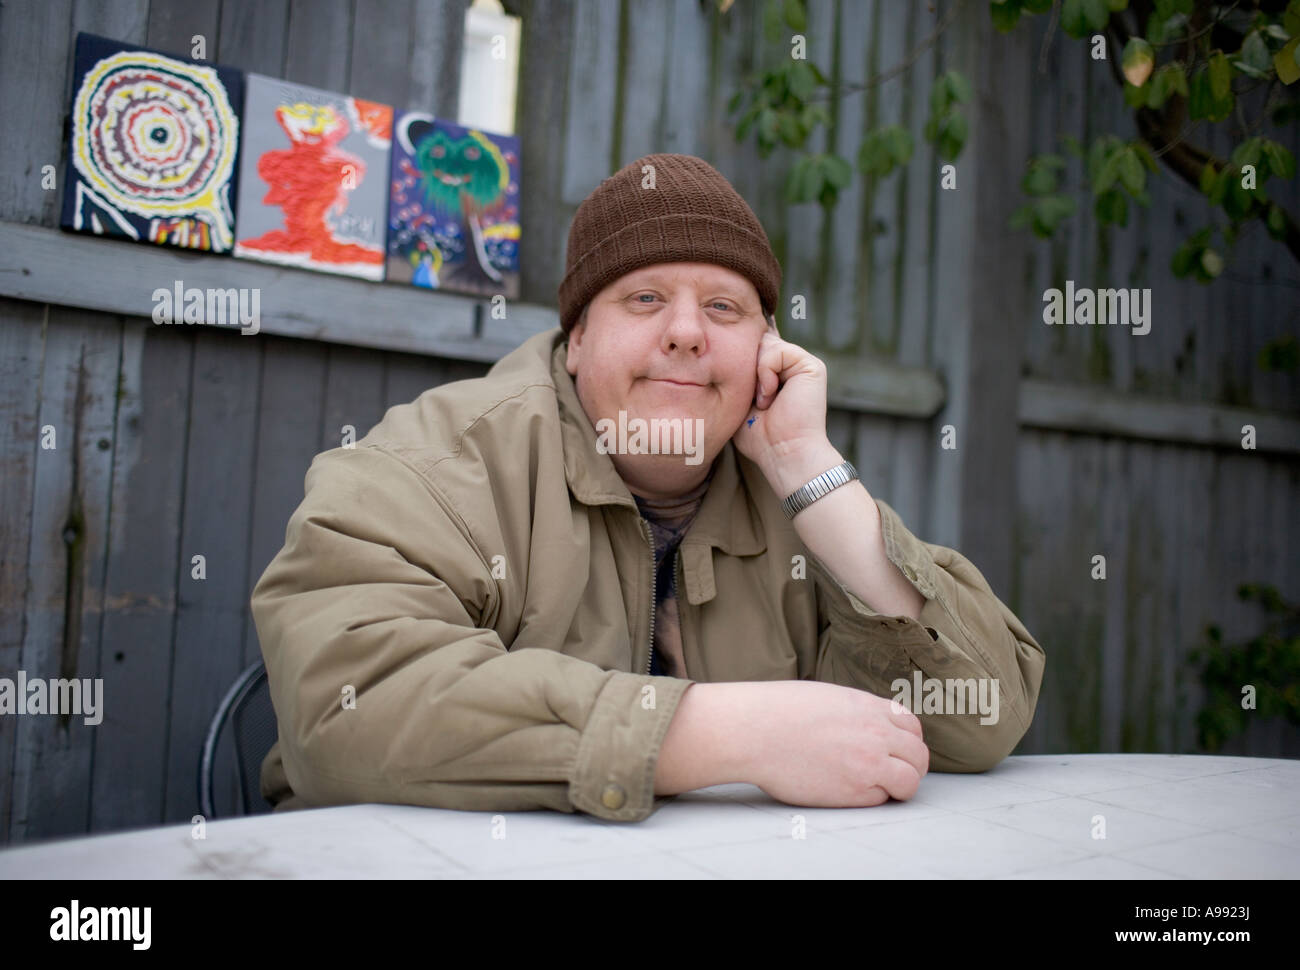 A man with Mental Health Issues who is an artist and is participating in an art exhibit - Stock Image